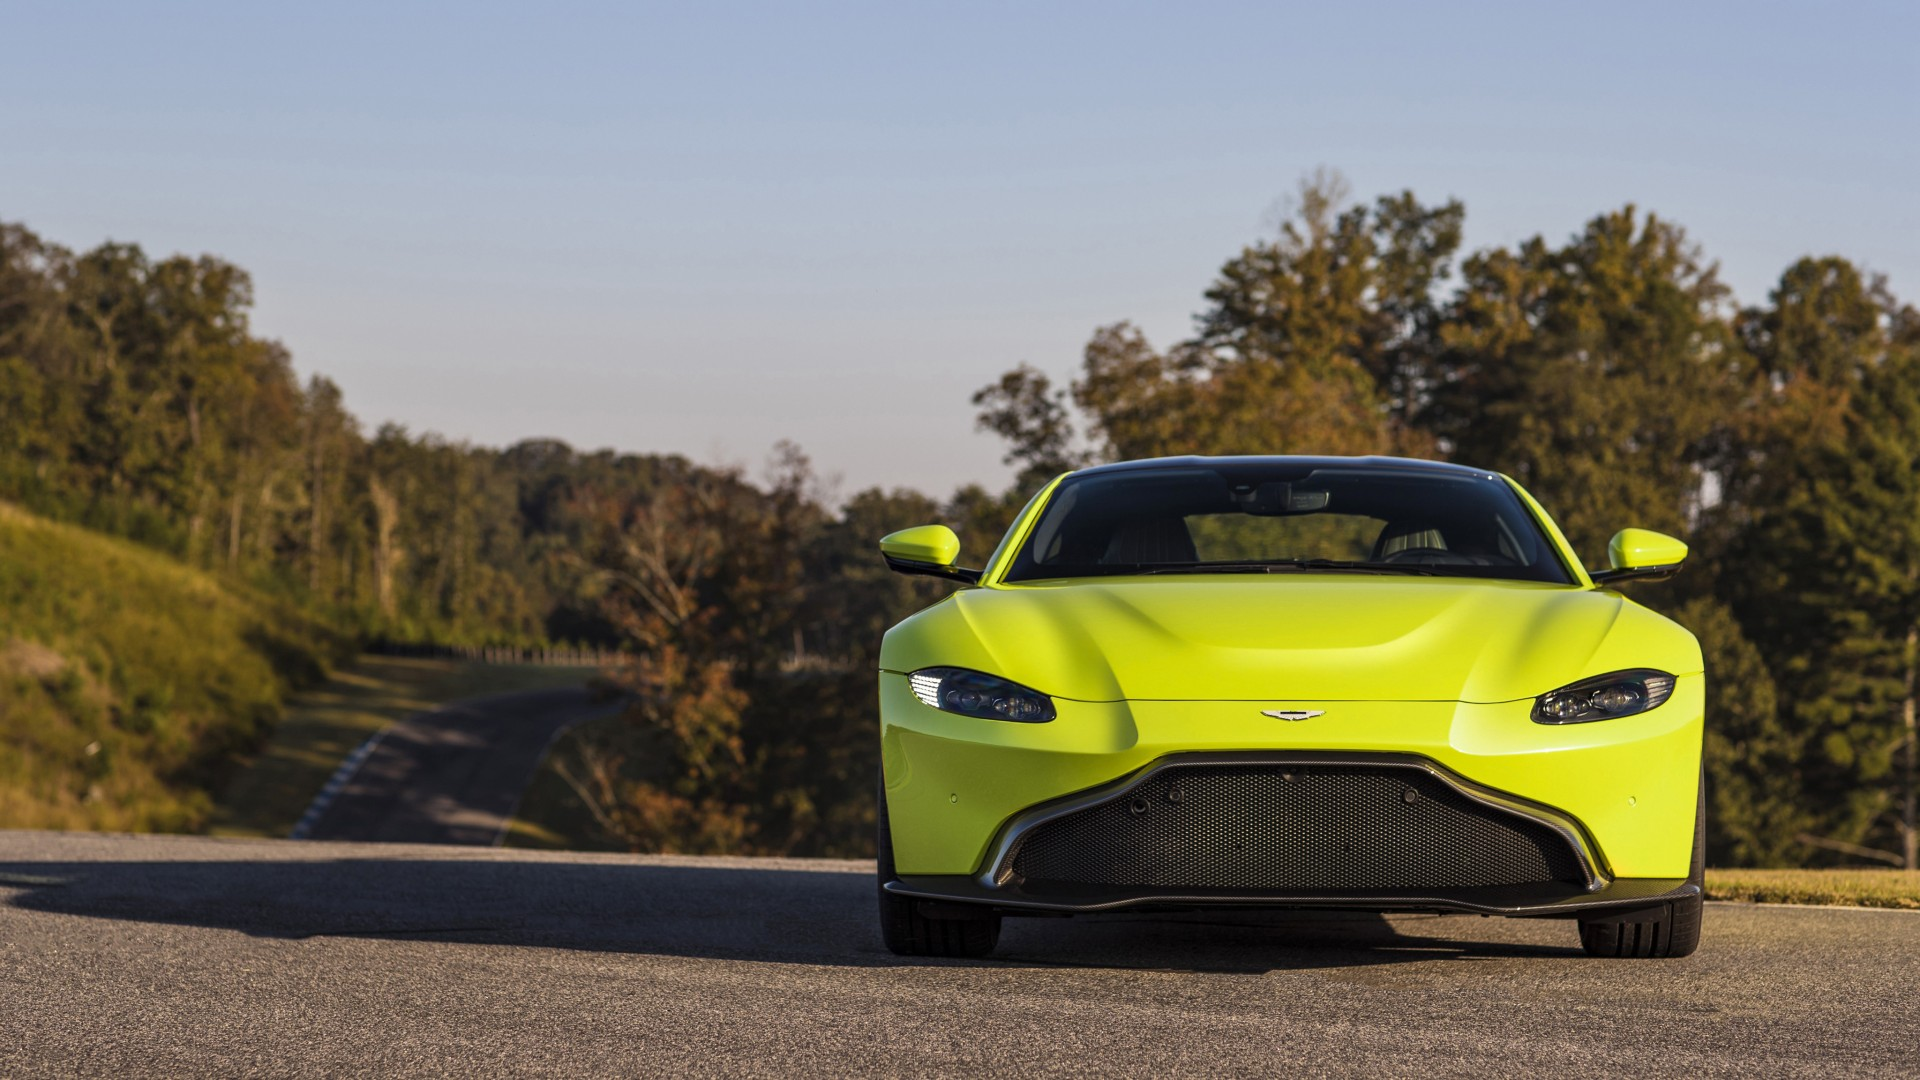 2018 aston martin vantage 4k wallpaper | hd car wallpapers | id #9145